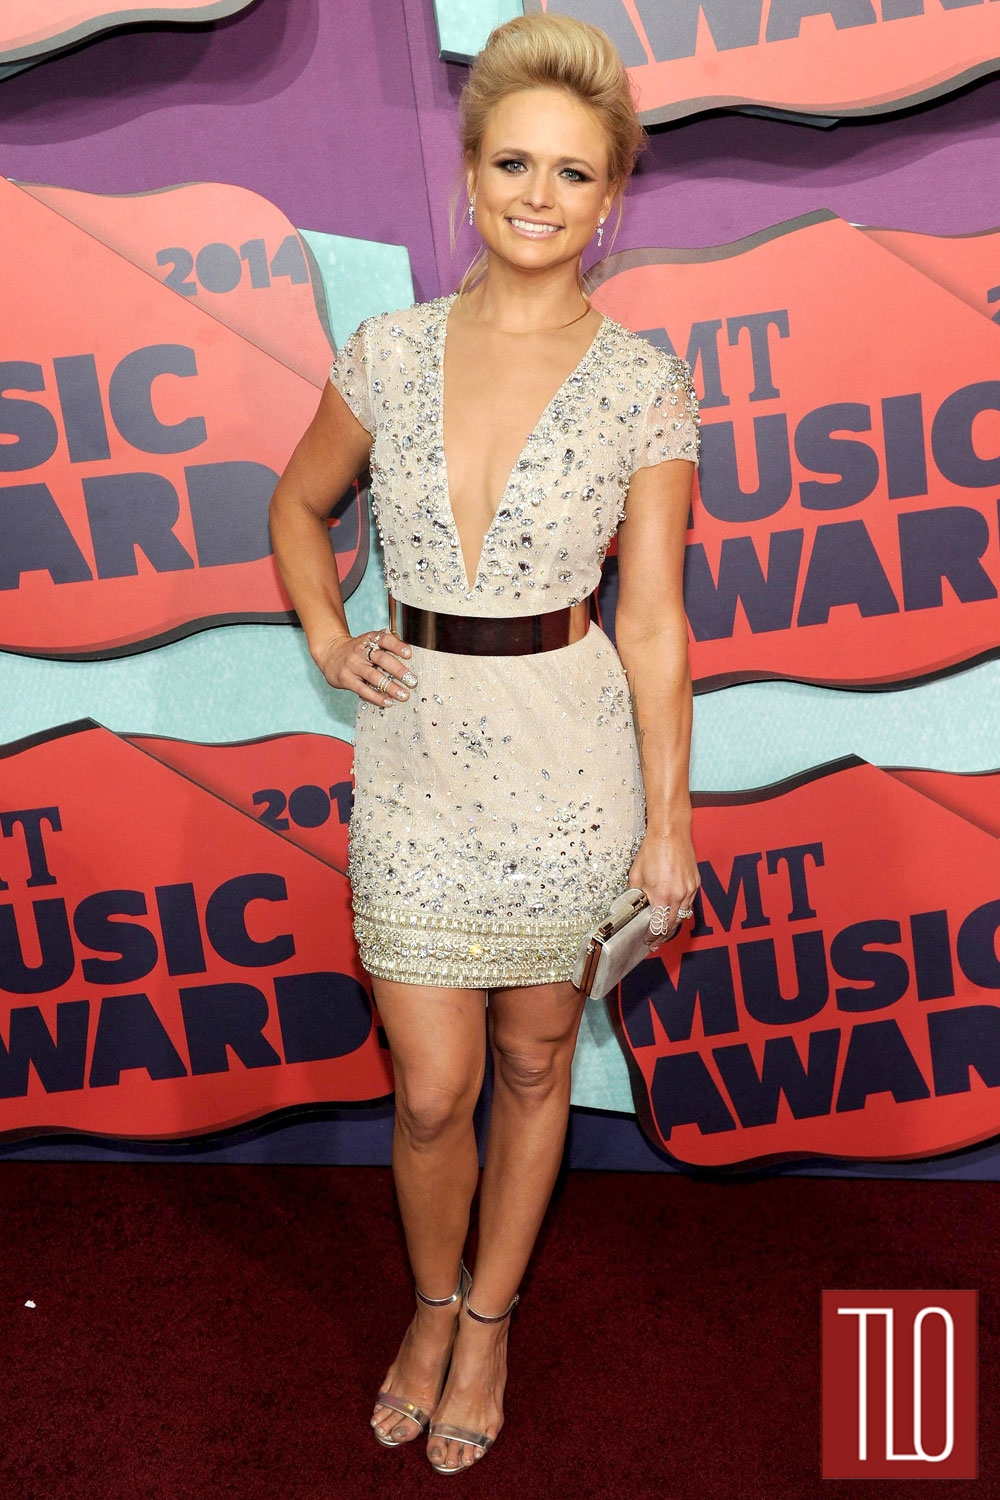 2014-CMT-Music-Awards-Red-Carpet-Rundown-Tom-Lorenzo-Site-TLO (1)